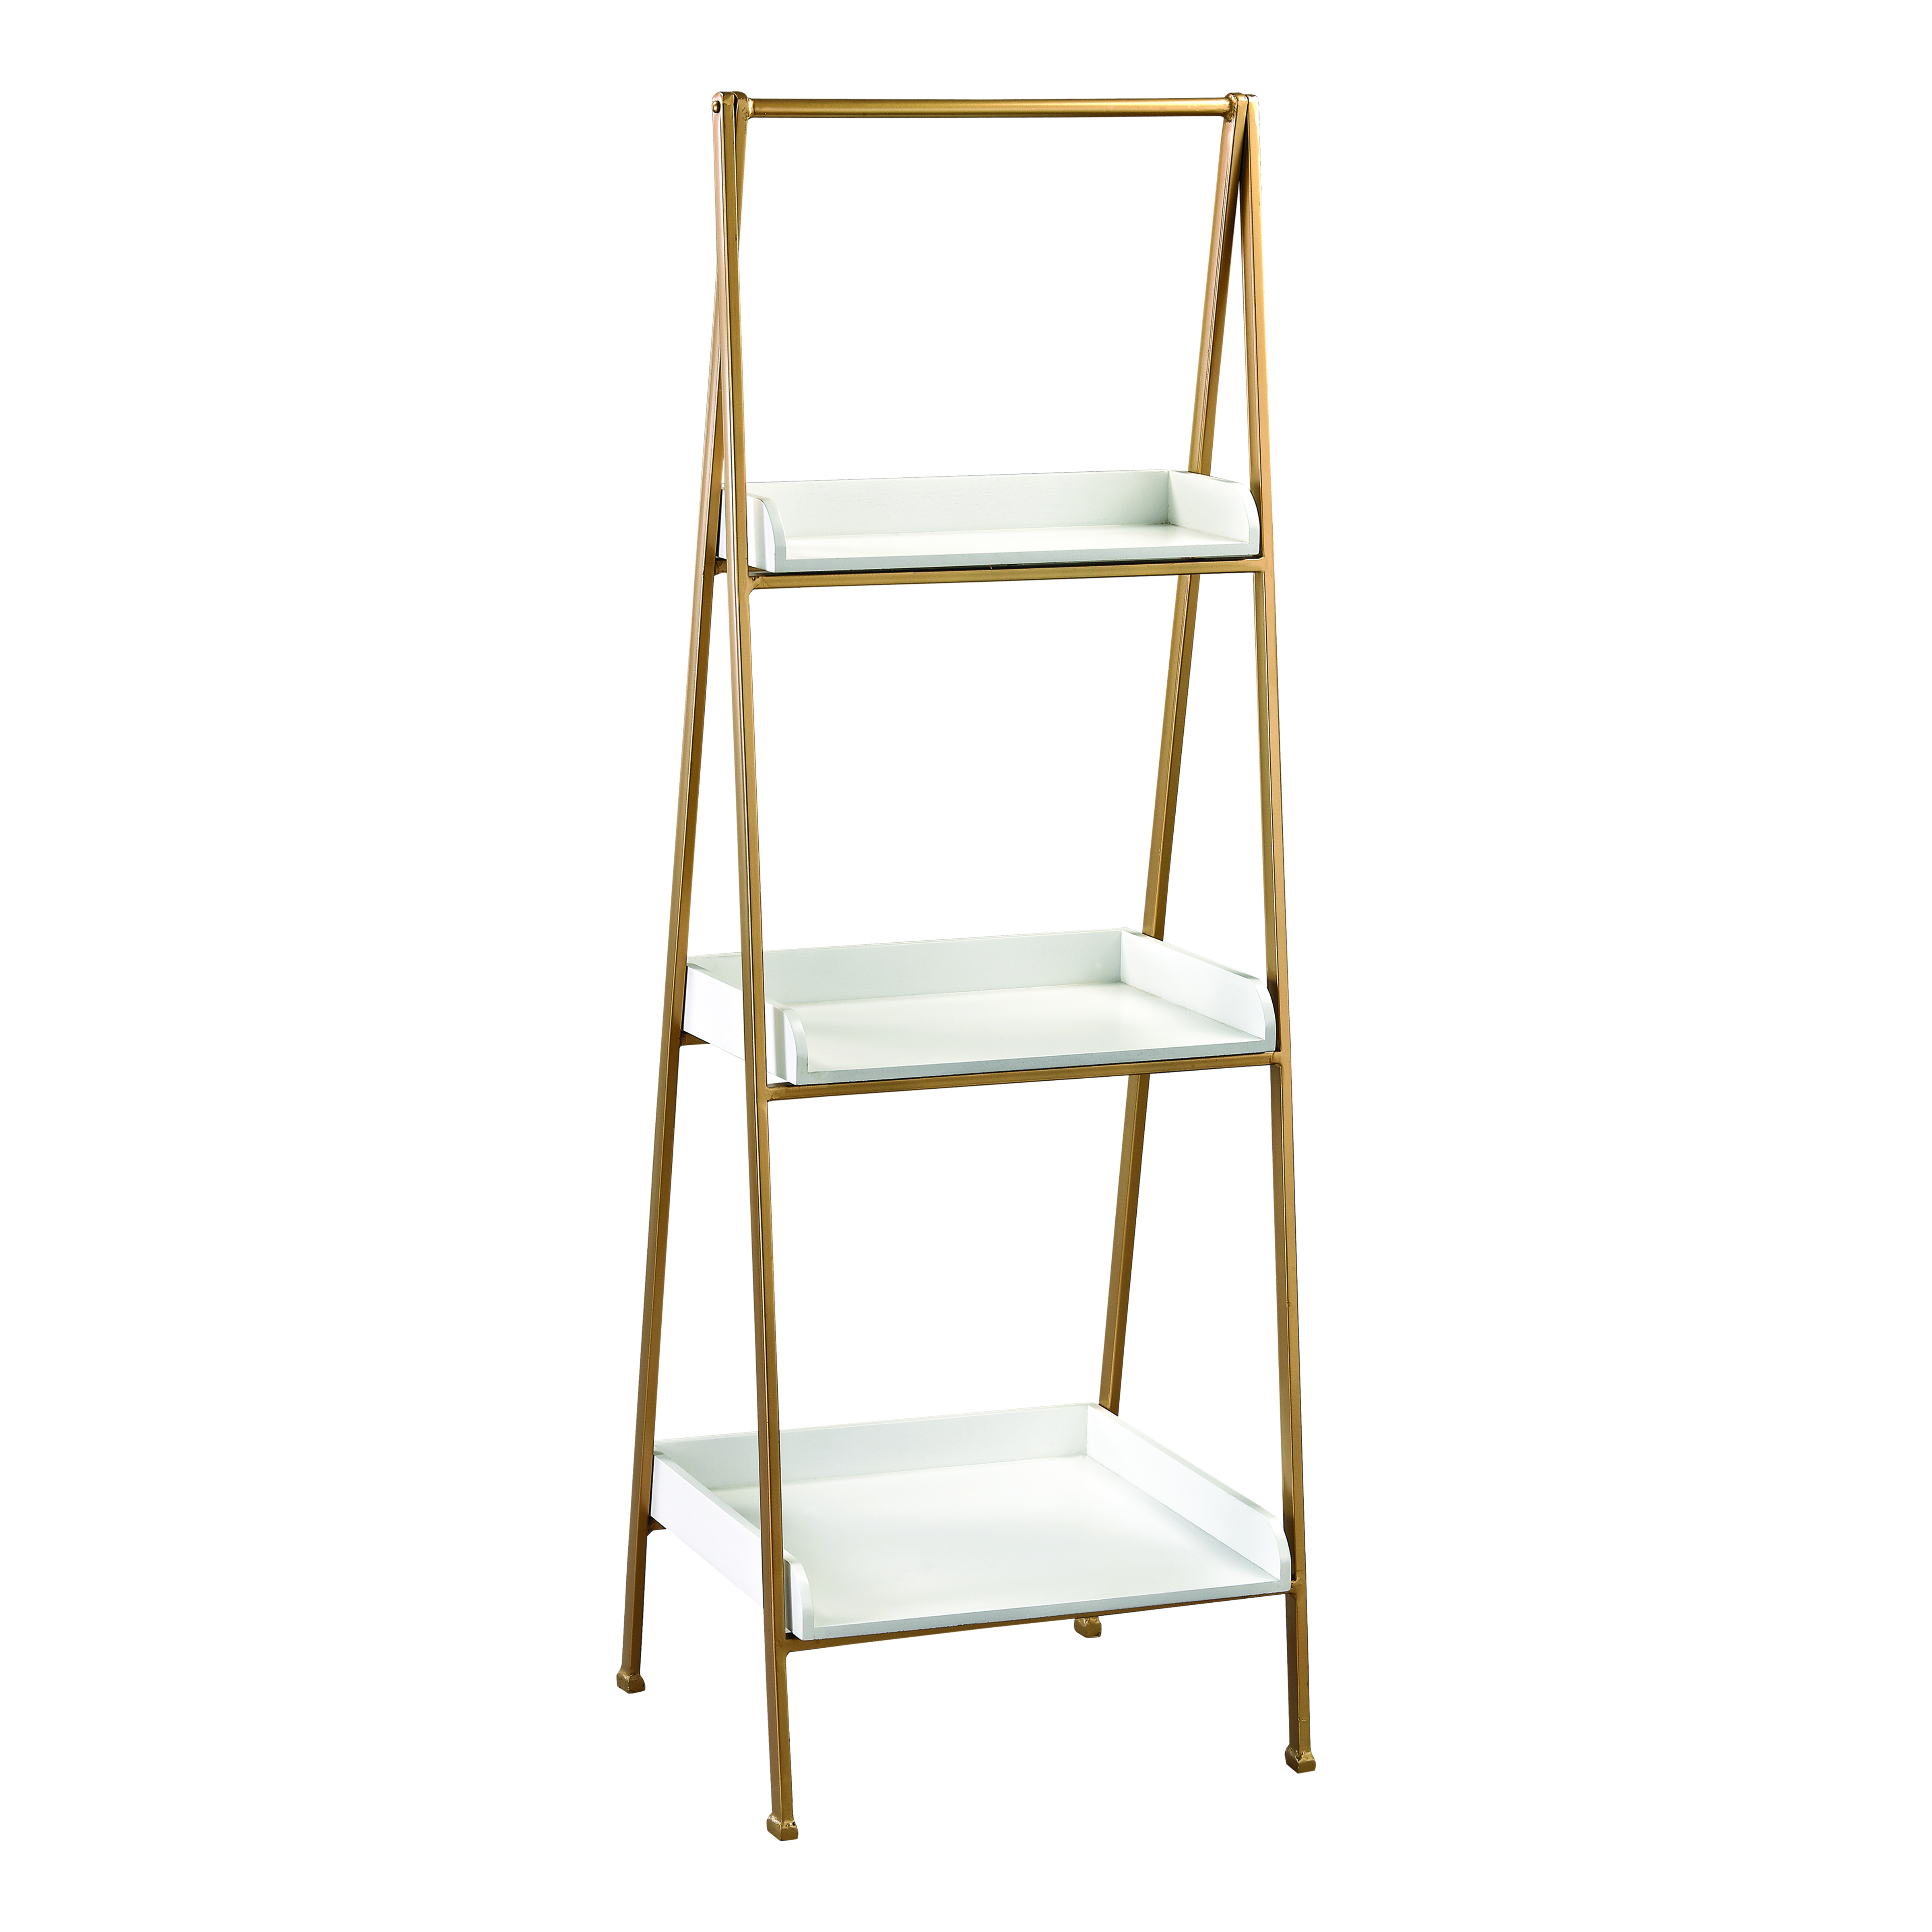 Kline Accent Shelf in White and Gold | Elk Home